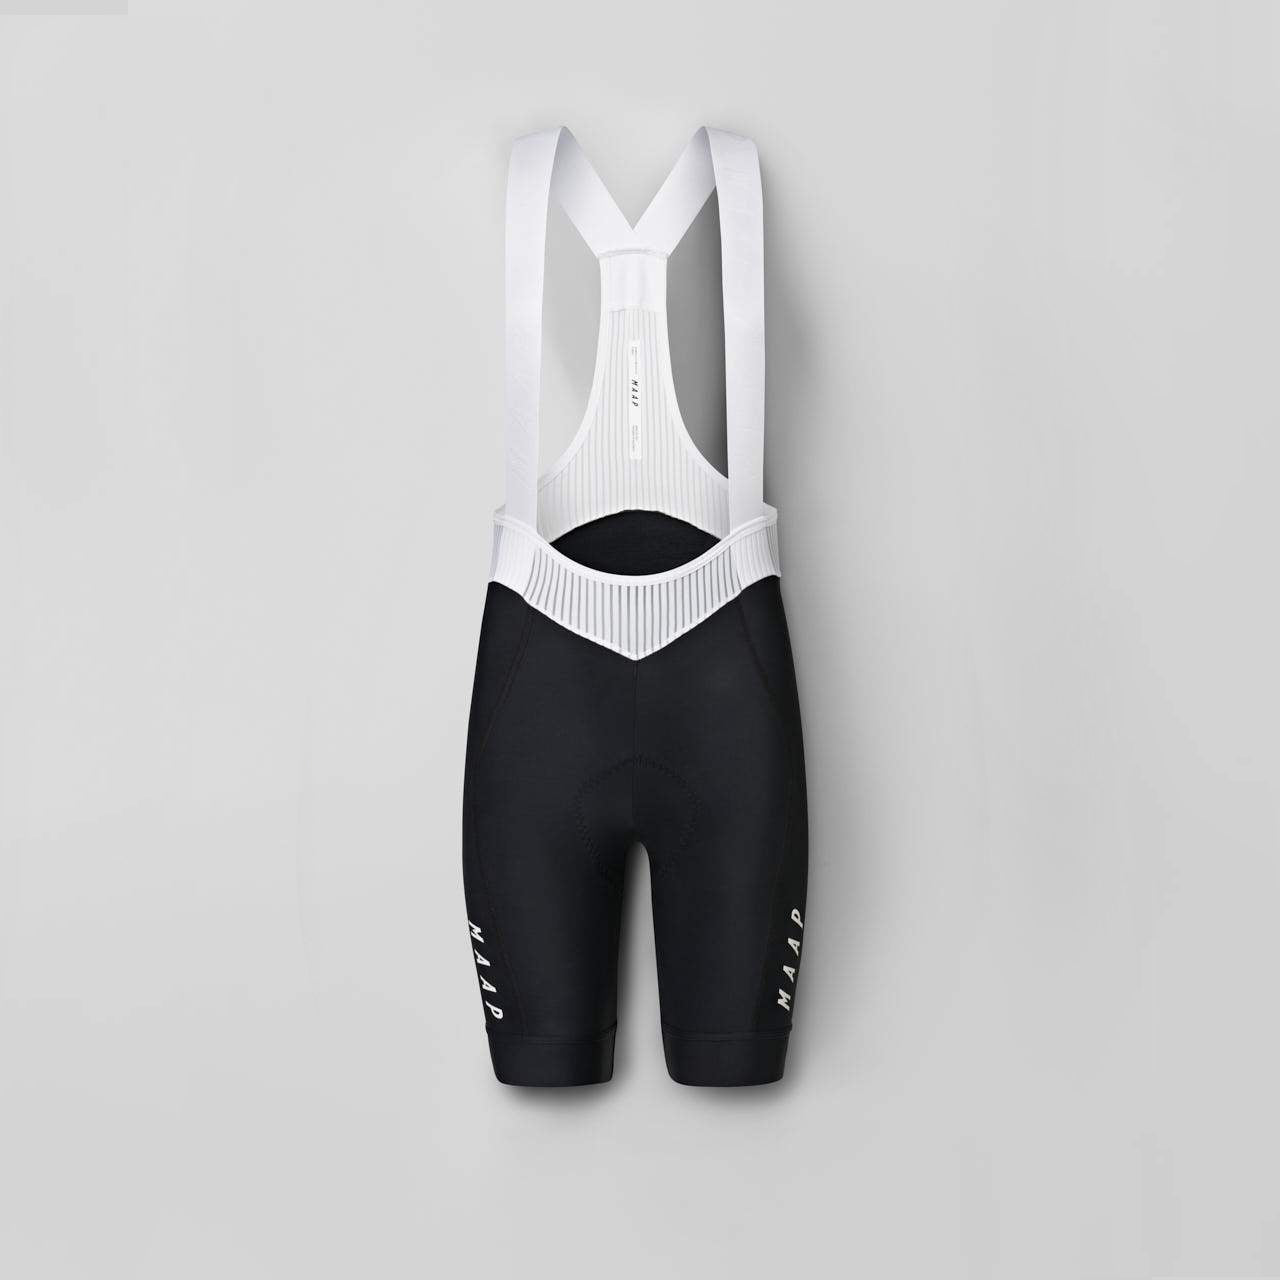 Women's Team Bib Evo - Black/White